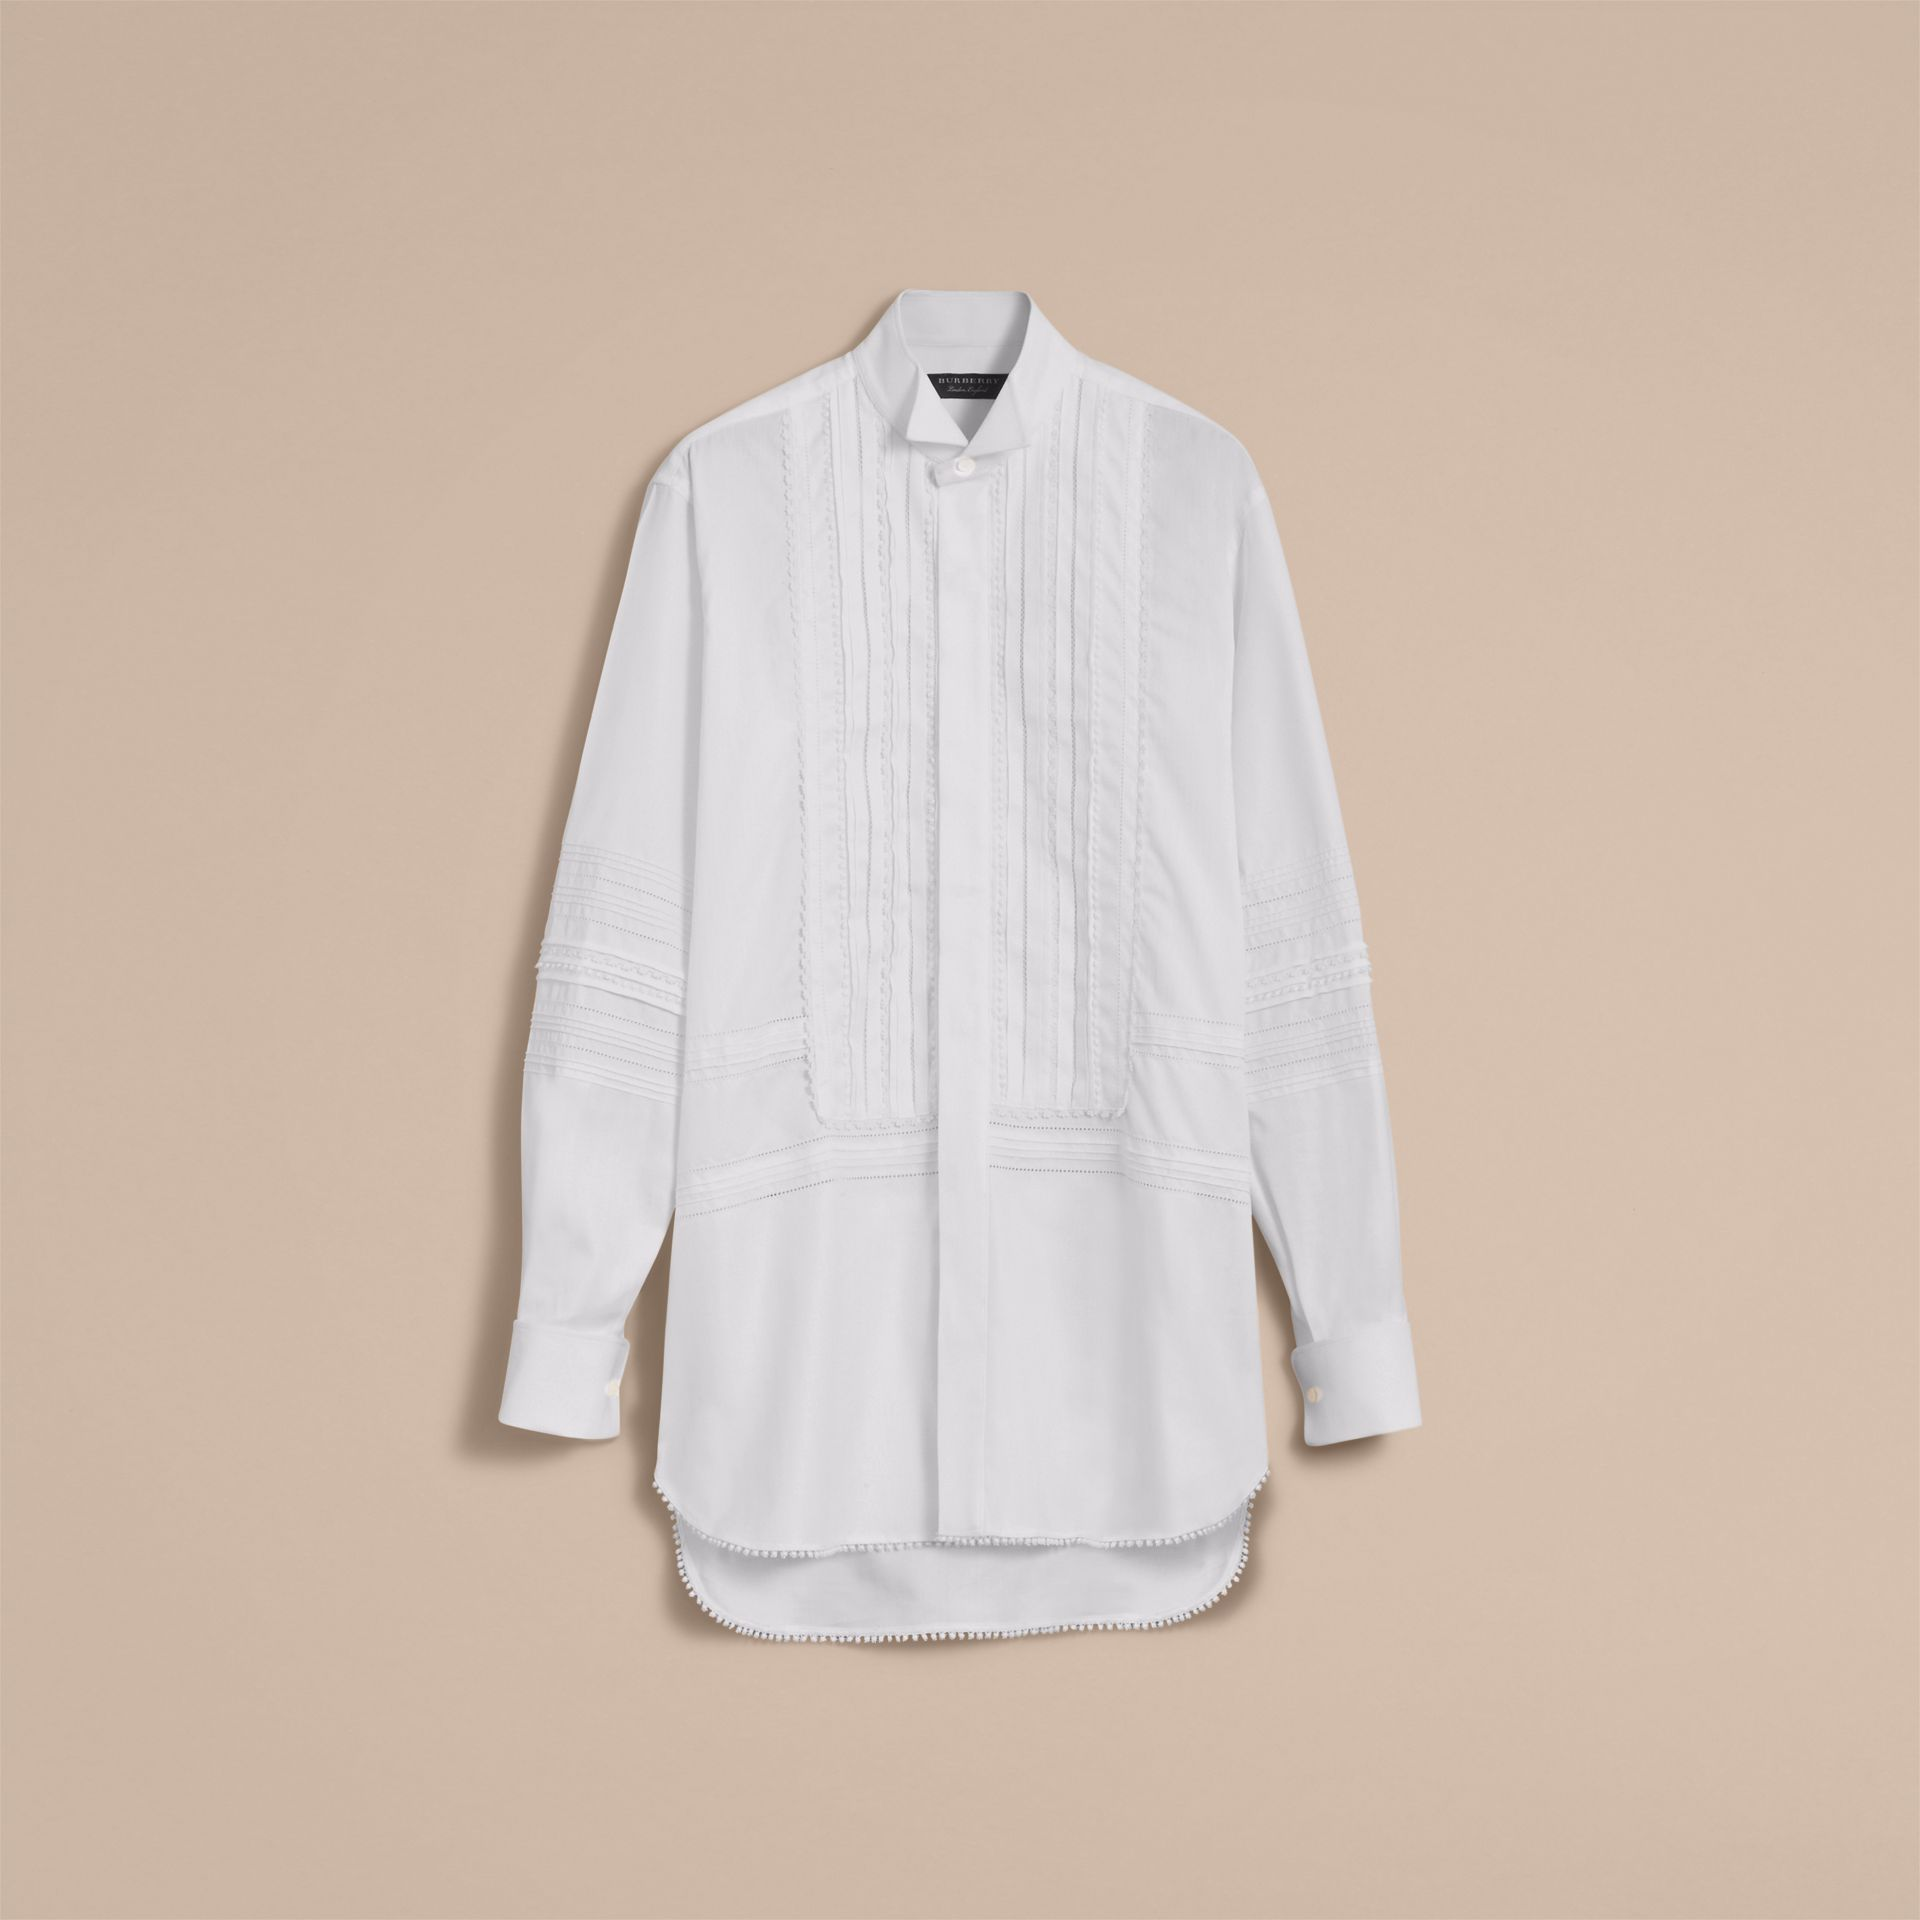 Cotton Evening Shirt with Pintucks and Macramé Trim in White - Men | Burberry Australia - gallery image 4